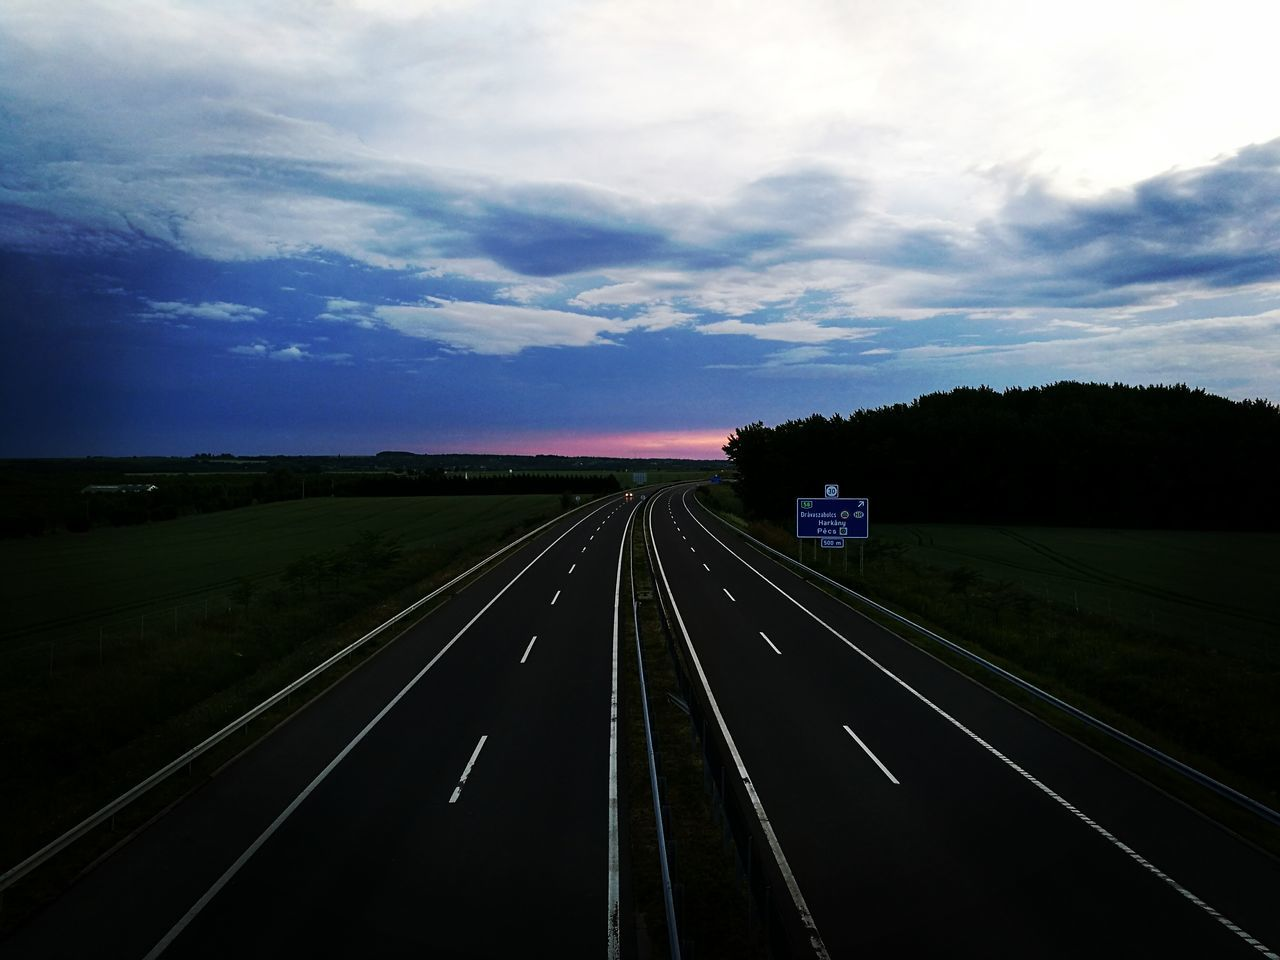 road, transportation, the way forward, road marking, sky, highway, landscape, cloud - sky, no people, scenics, nature, outdoors, day